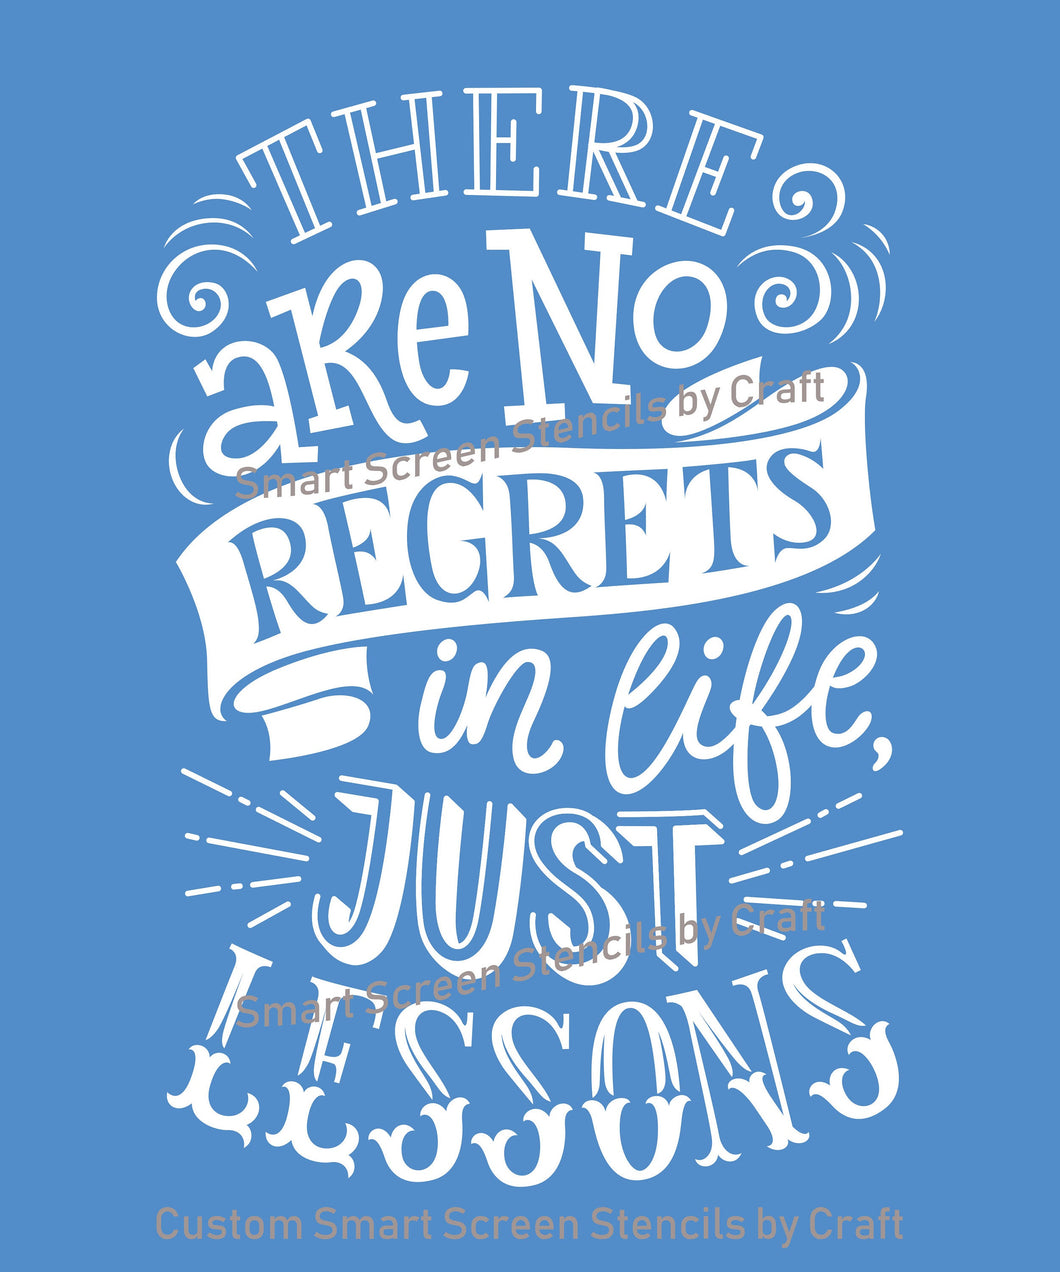 No Regrets Just Lessons SilkScreen Stencil - Reusable, Selfadhesive - Canvas, Cards, Glass, Ceramic, Wall, Fabric, Wood, Metal, Clay